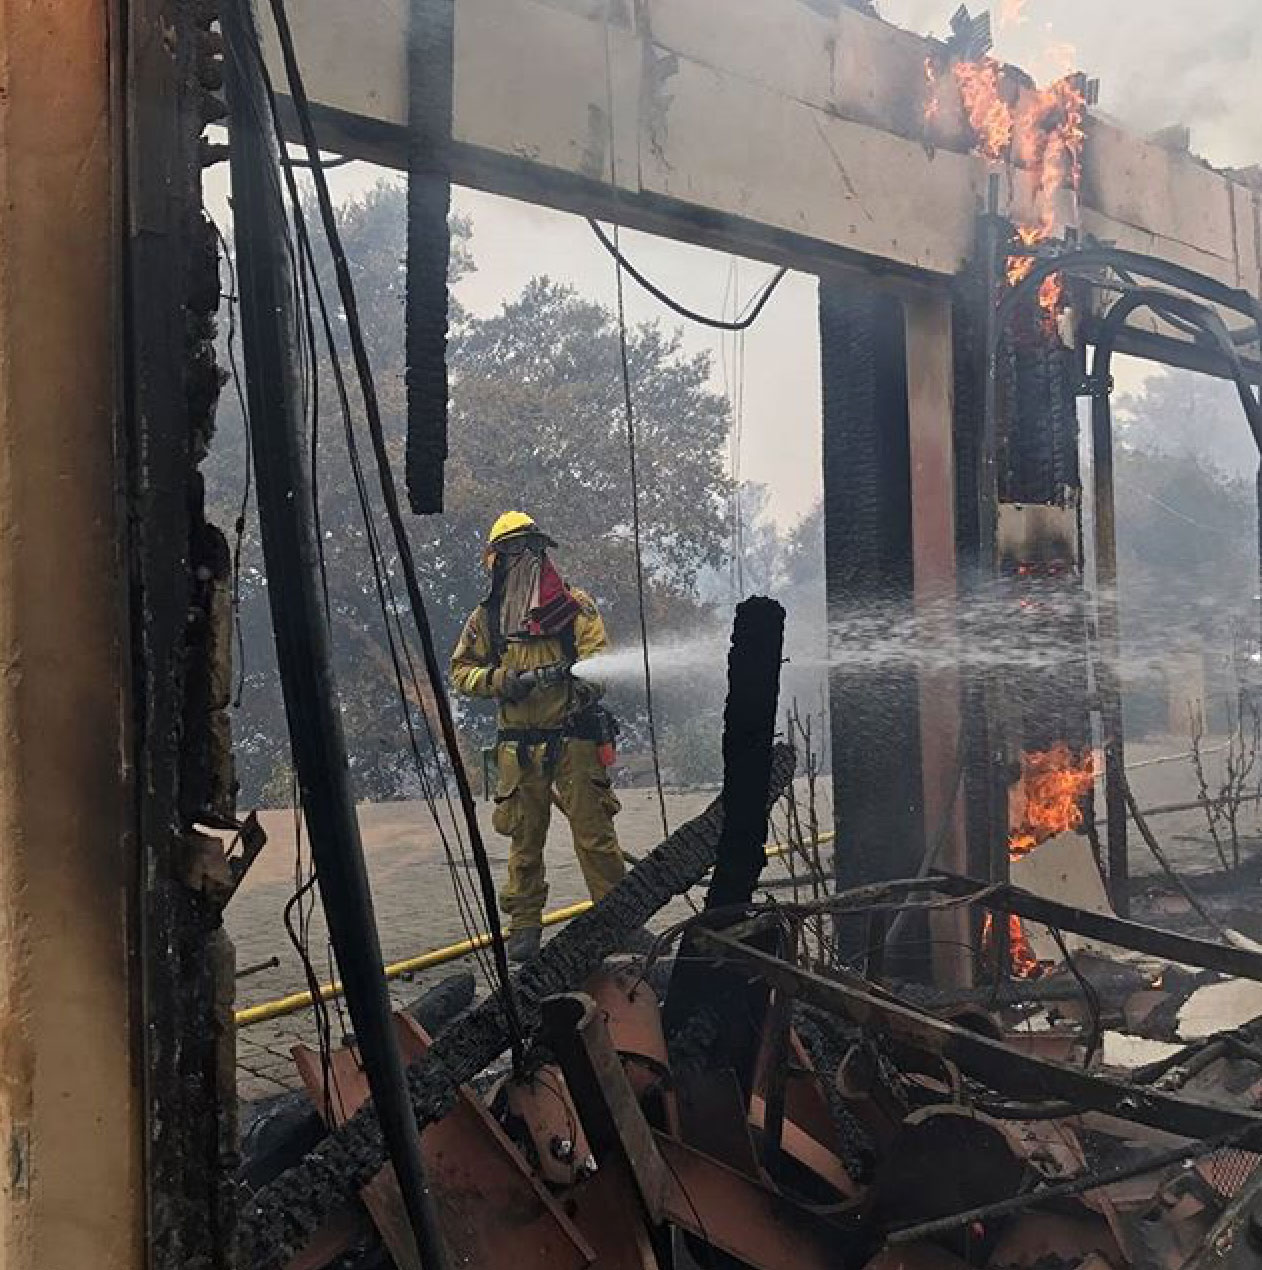 <div class='meta'><div class='origin-logo' data-origin='none'></div><span class='caption-text' data-credit='calfire/Instagram'>CalFire shared this photo of a firefighter in action.</span></div>